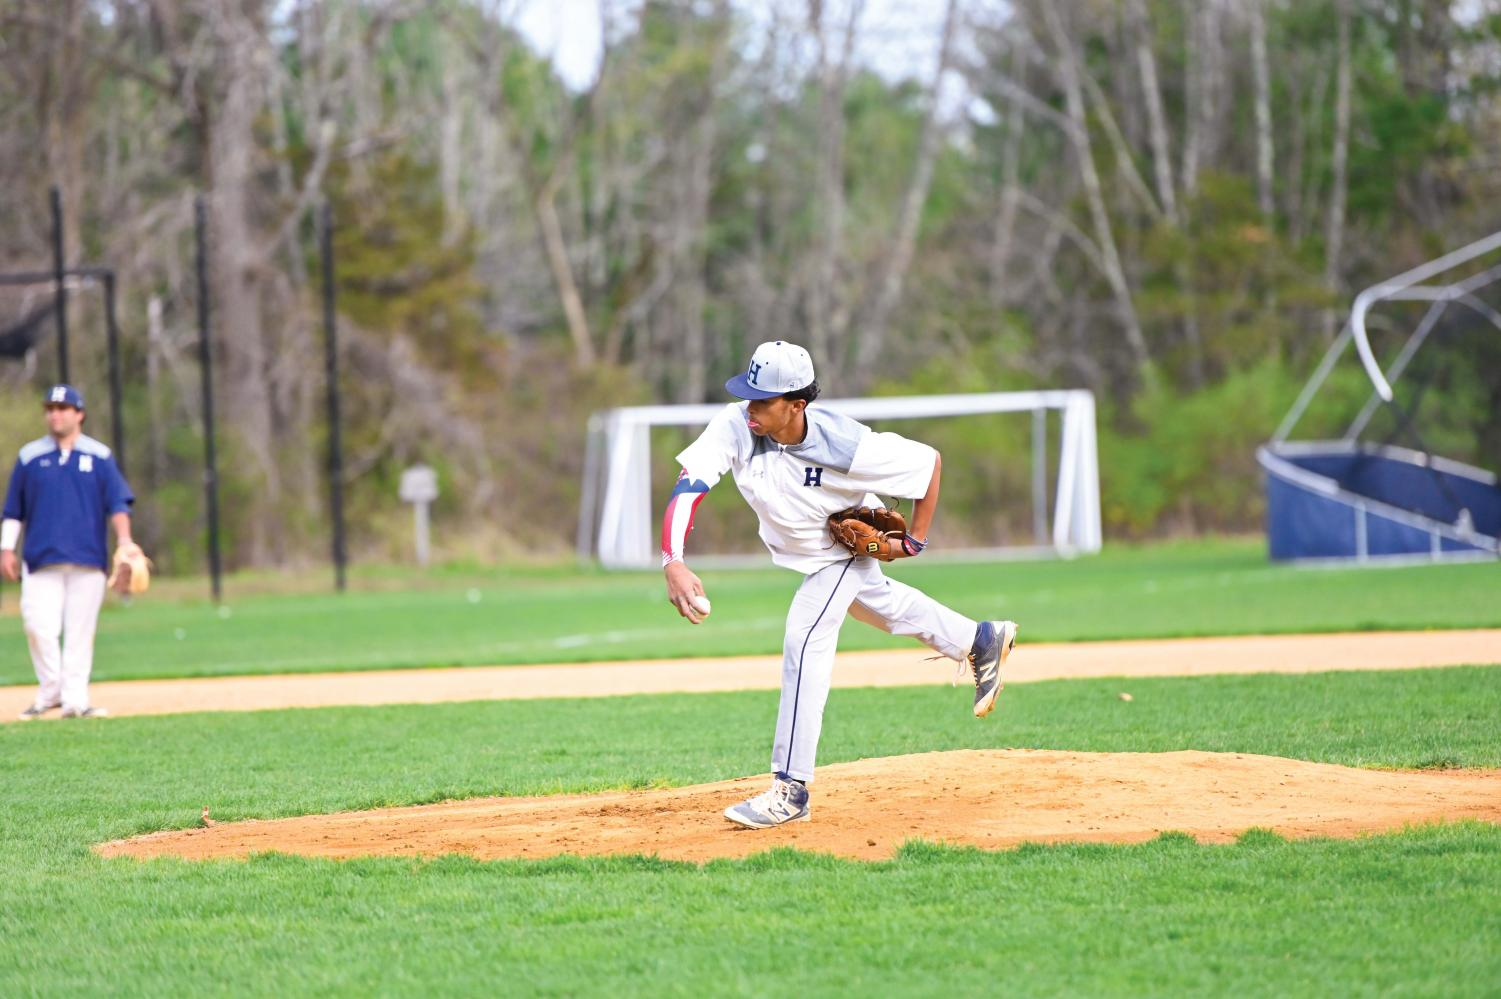 Carlos Martinez '22 pitched a complete game against K-O.